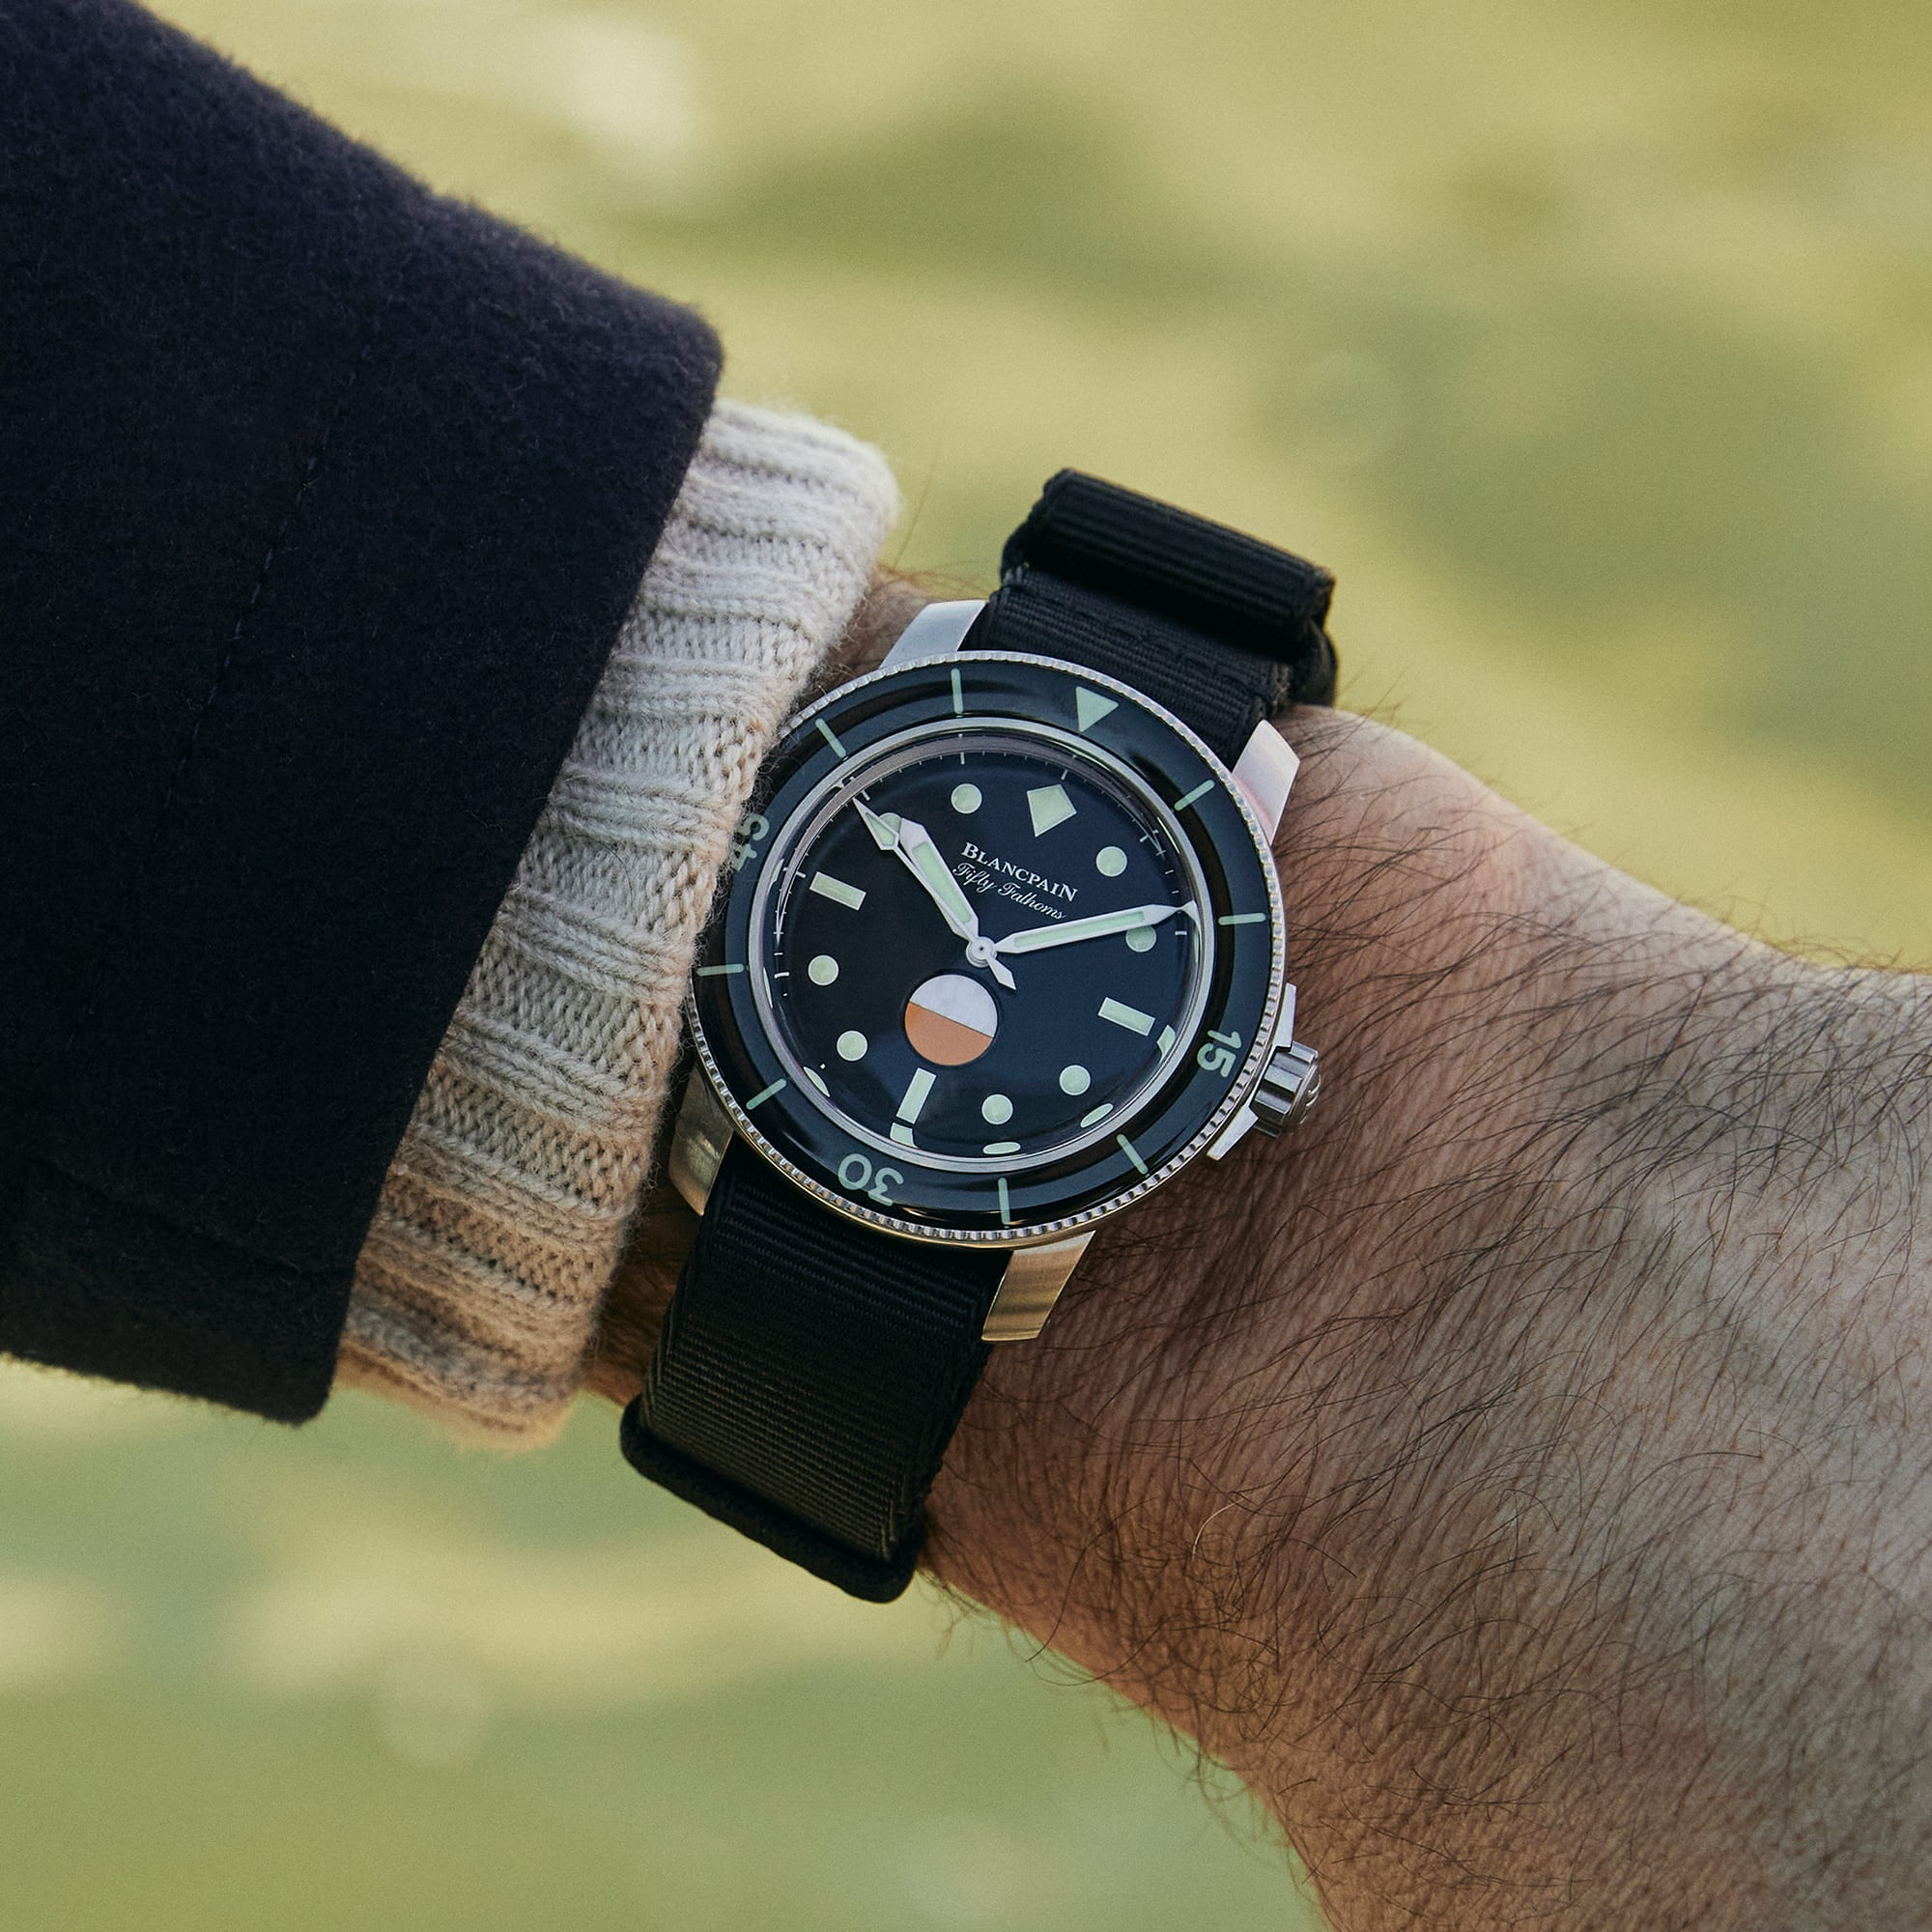 <p>Blancpain Fifty Fathoms MIL-SPEC Limited Edition For HODINKEE</p>